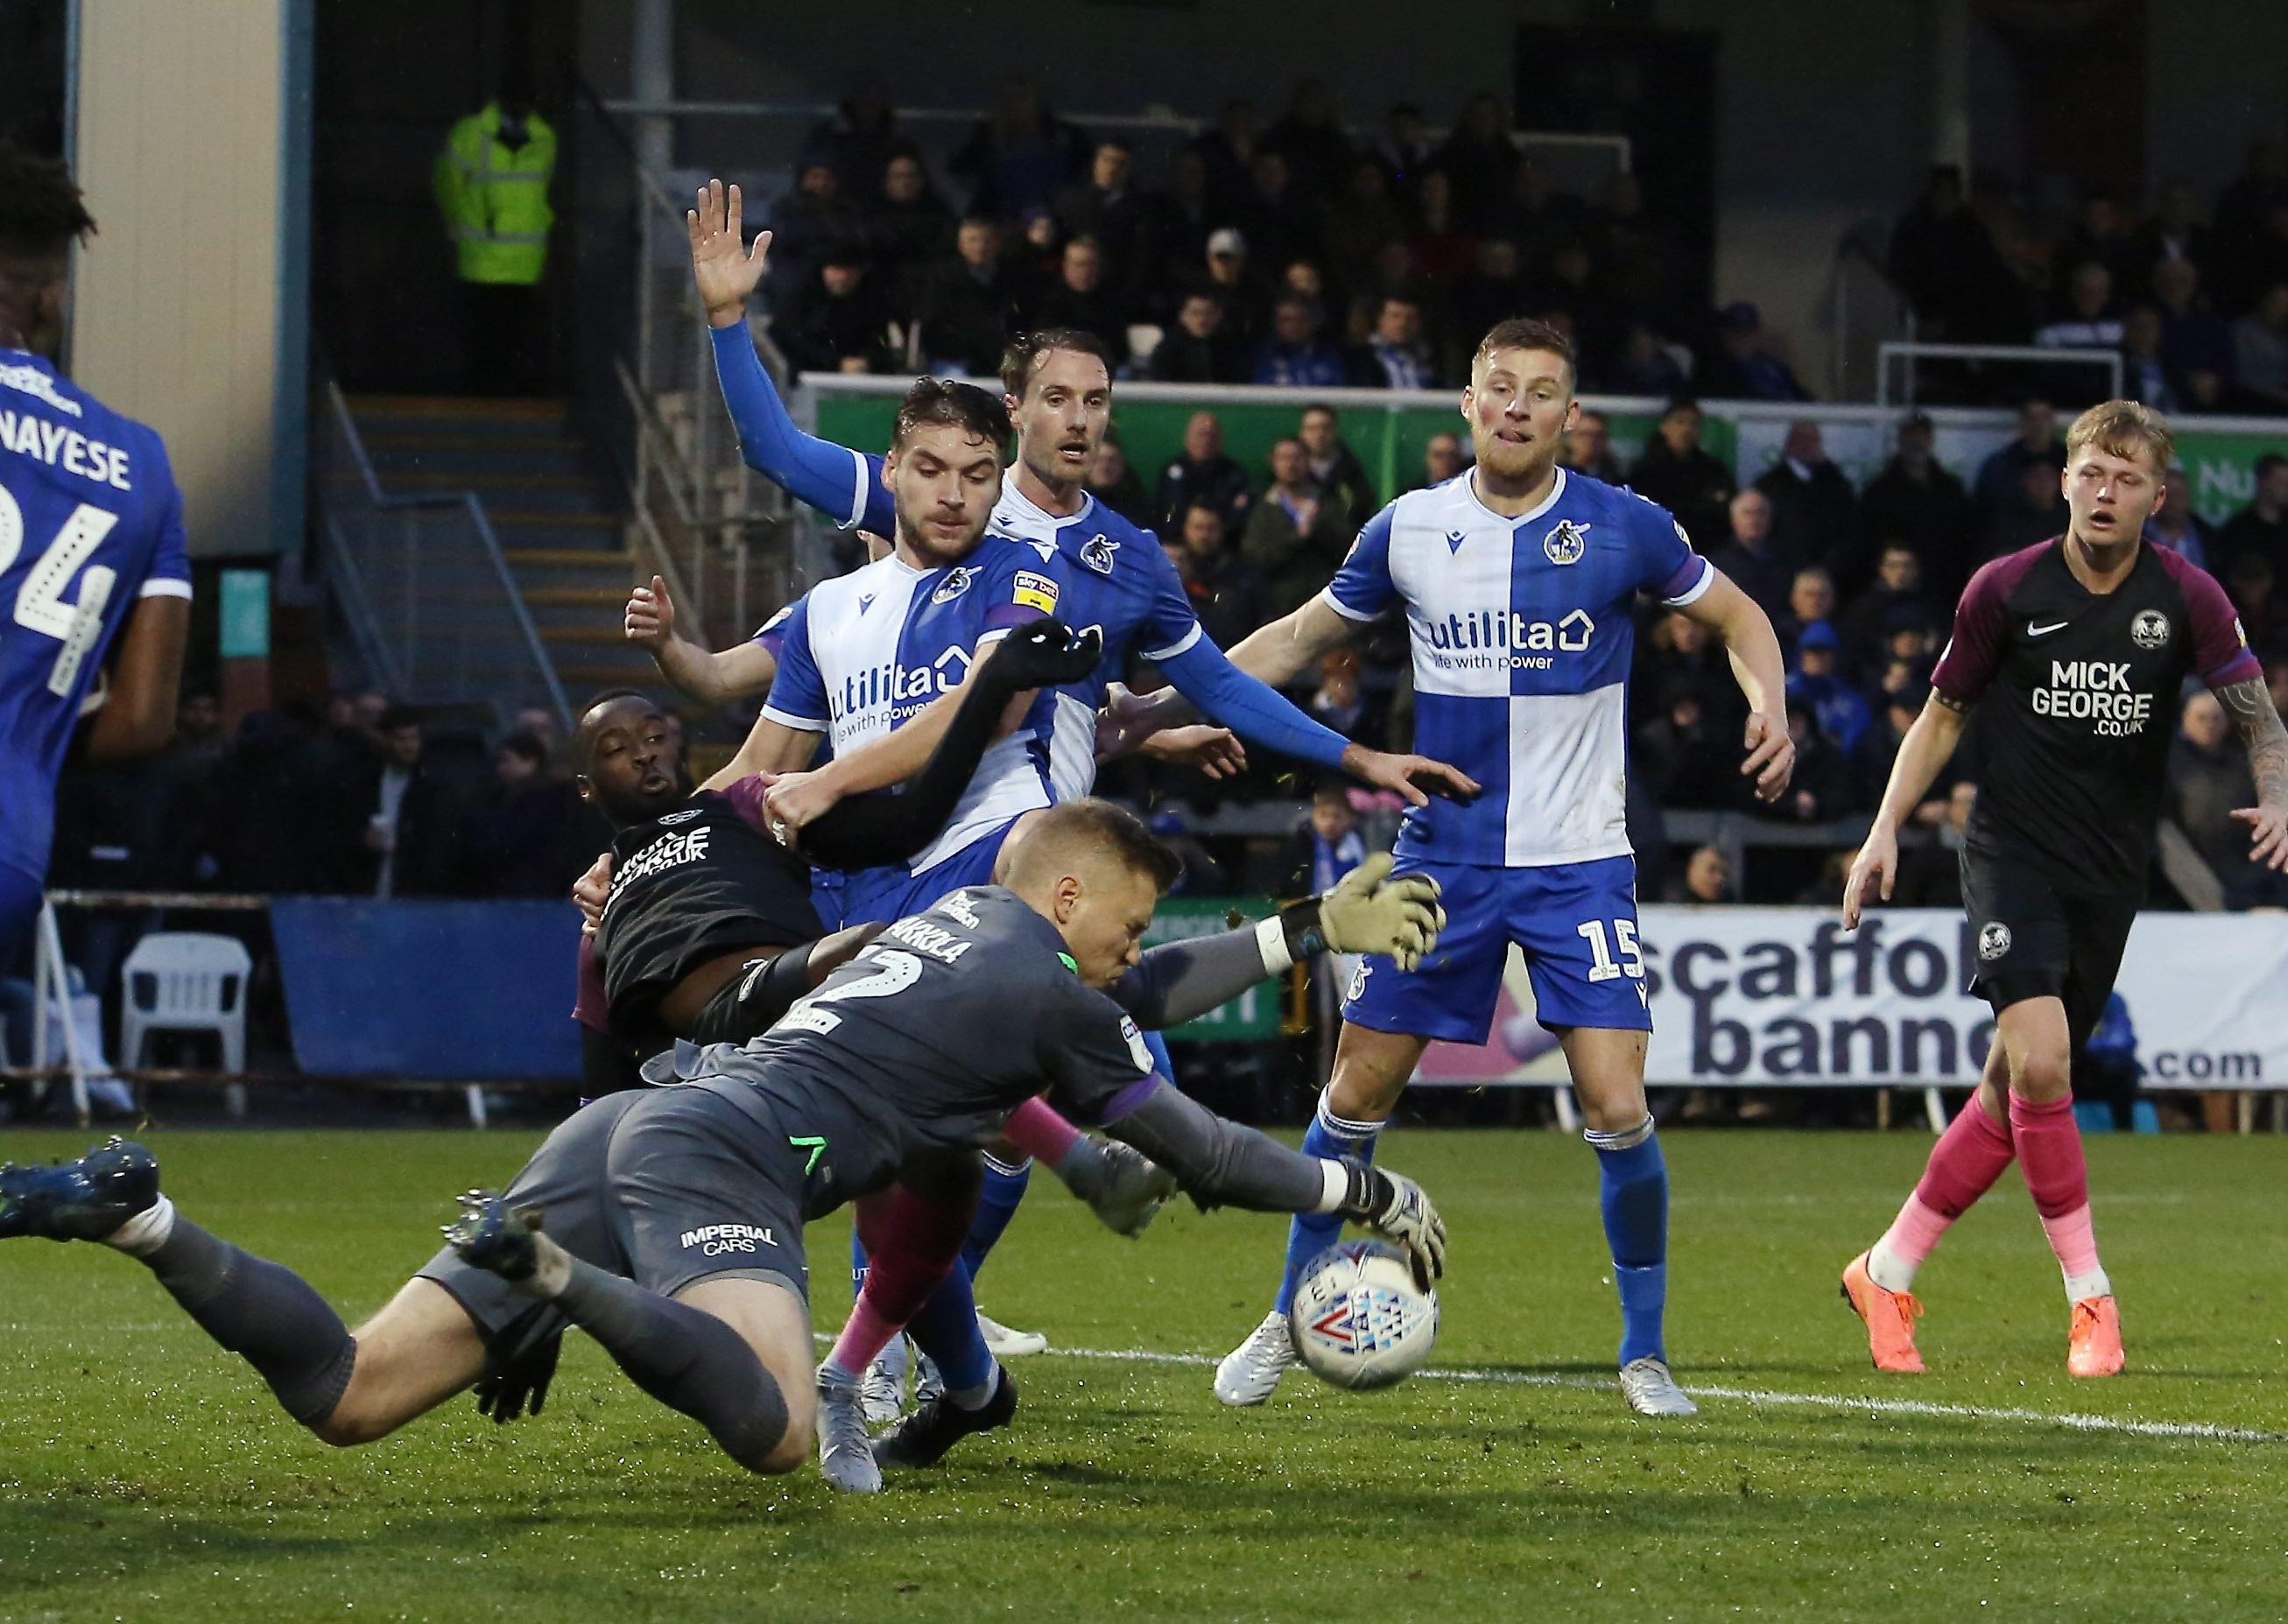 Peterborough United Manager Not Overly Happy Despite His